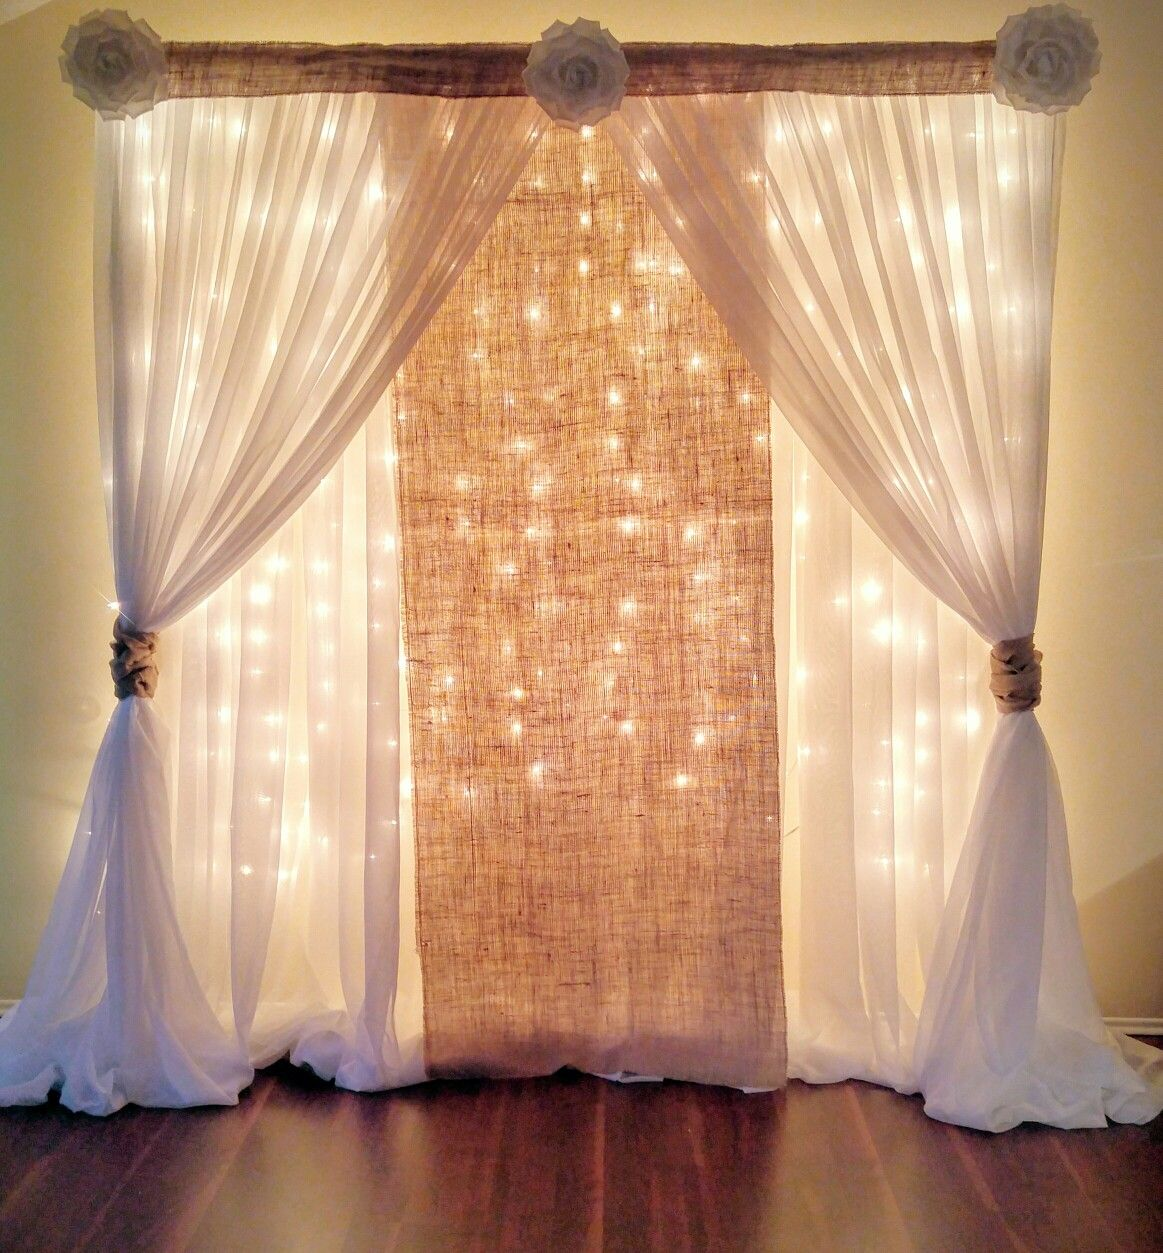 Diy Wedding Backdrop With Lights Breathtaking 44 Unique And Stunning Wedding Backdrop Ideas